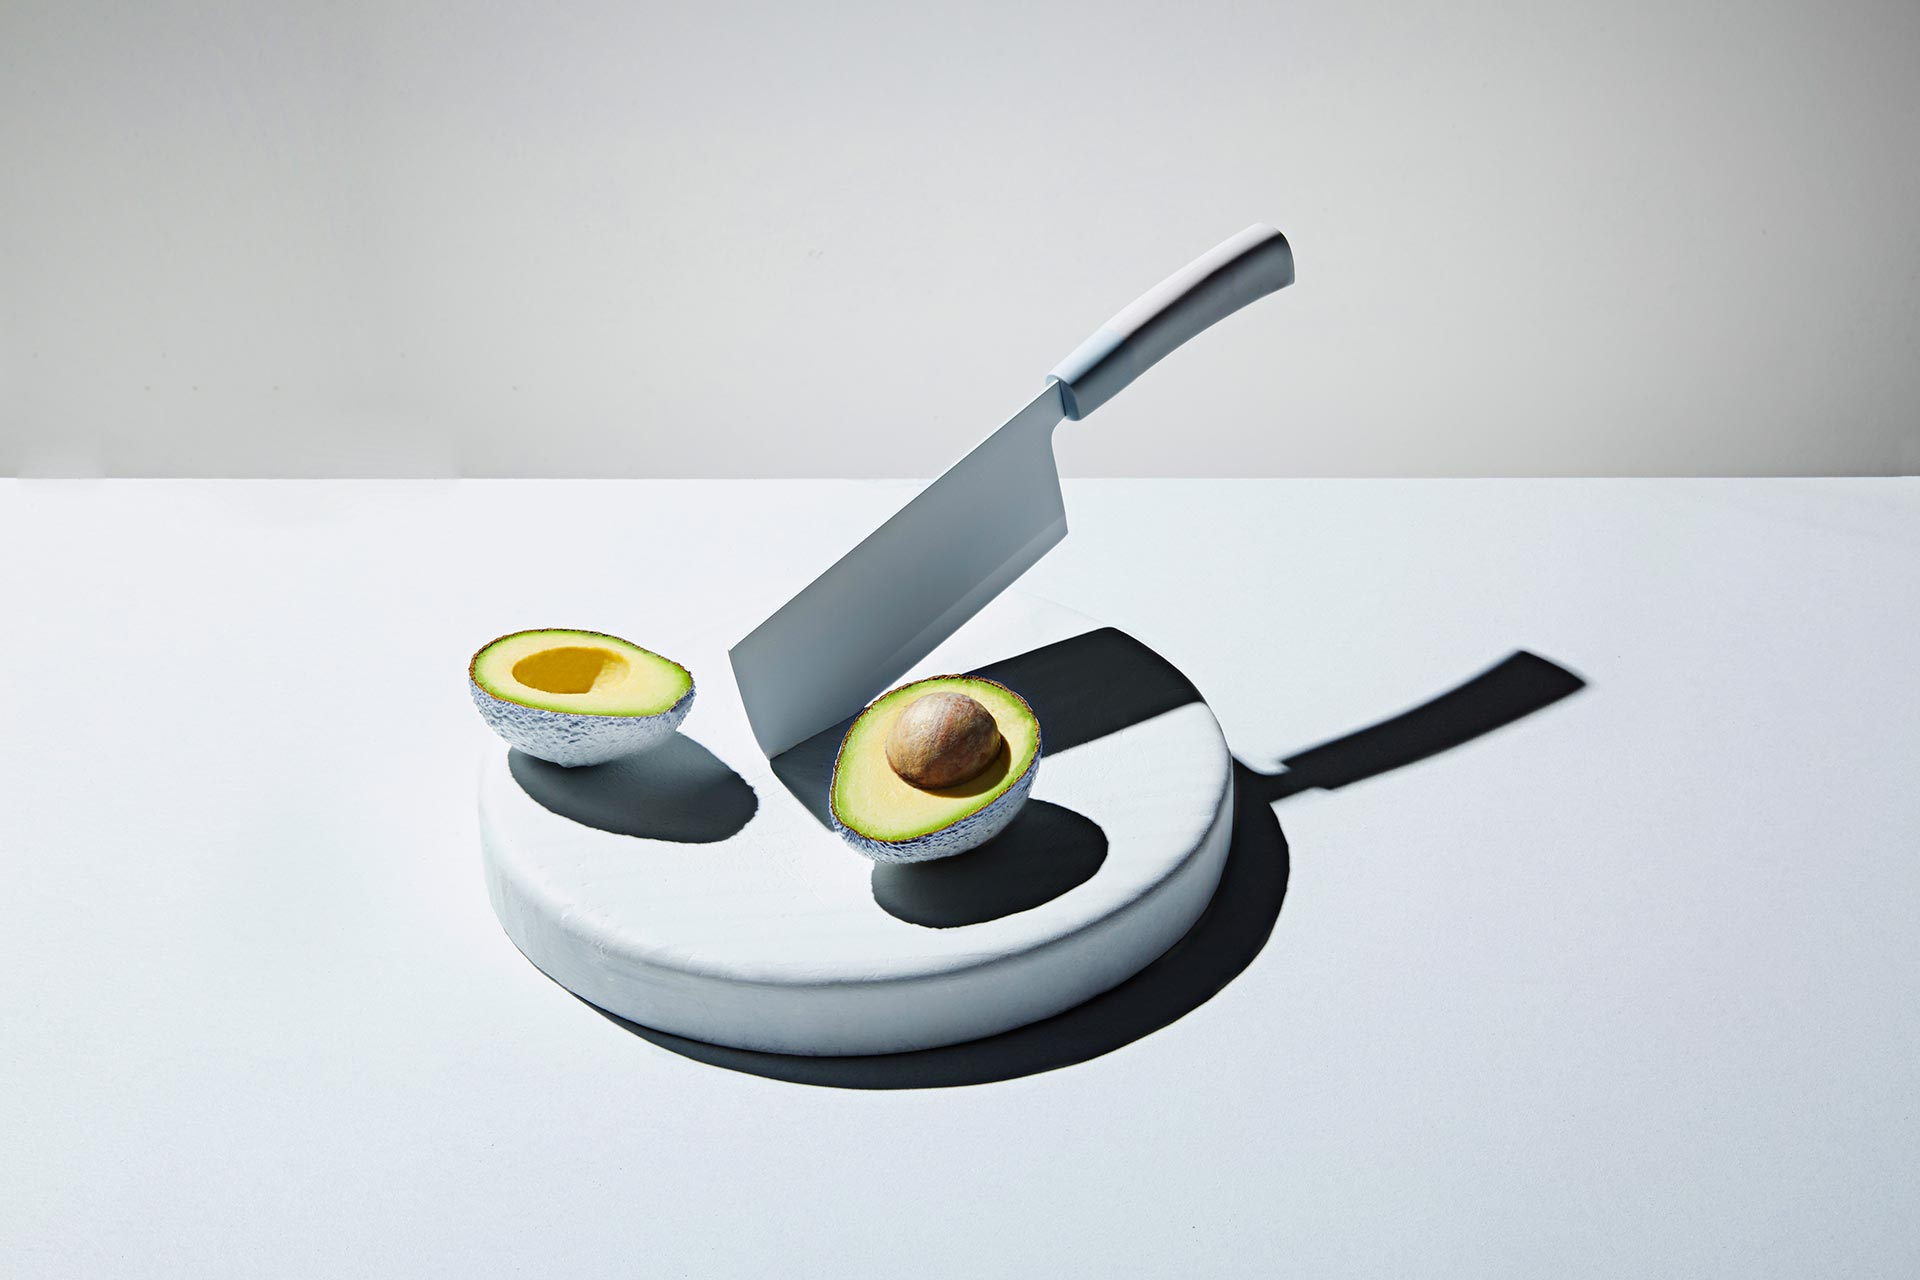 Avocado and Cleaver on a Chopping Block